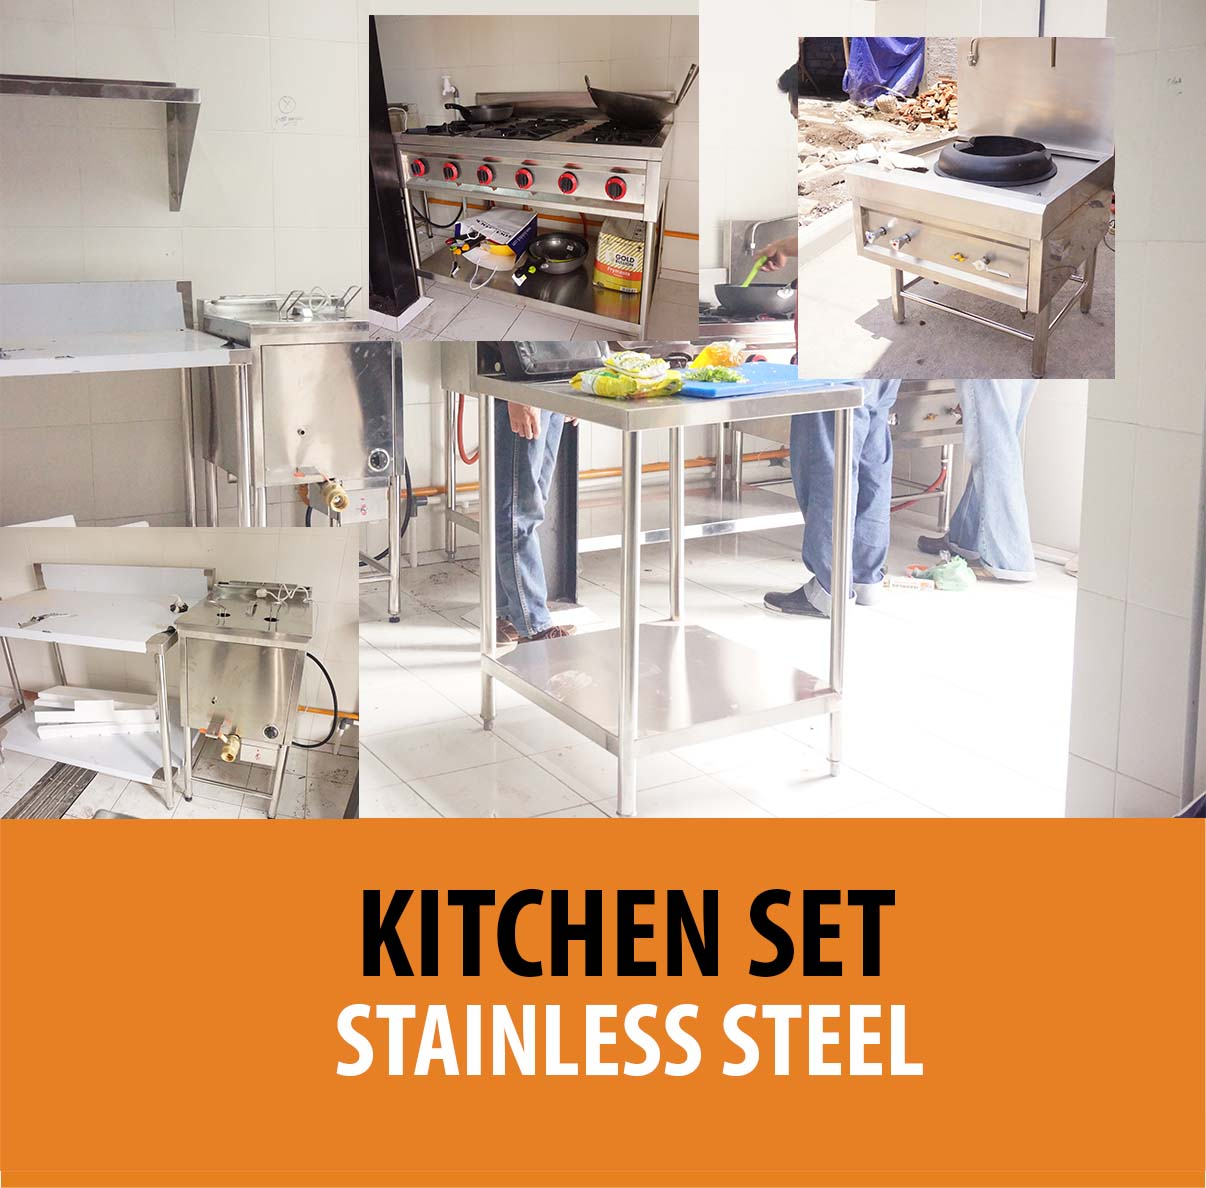 Harga kitchen set stainless per meter for Harga kitchen set aluminium per meter